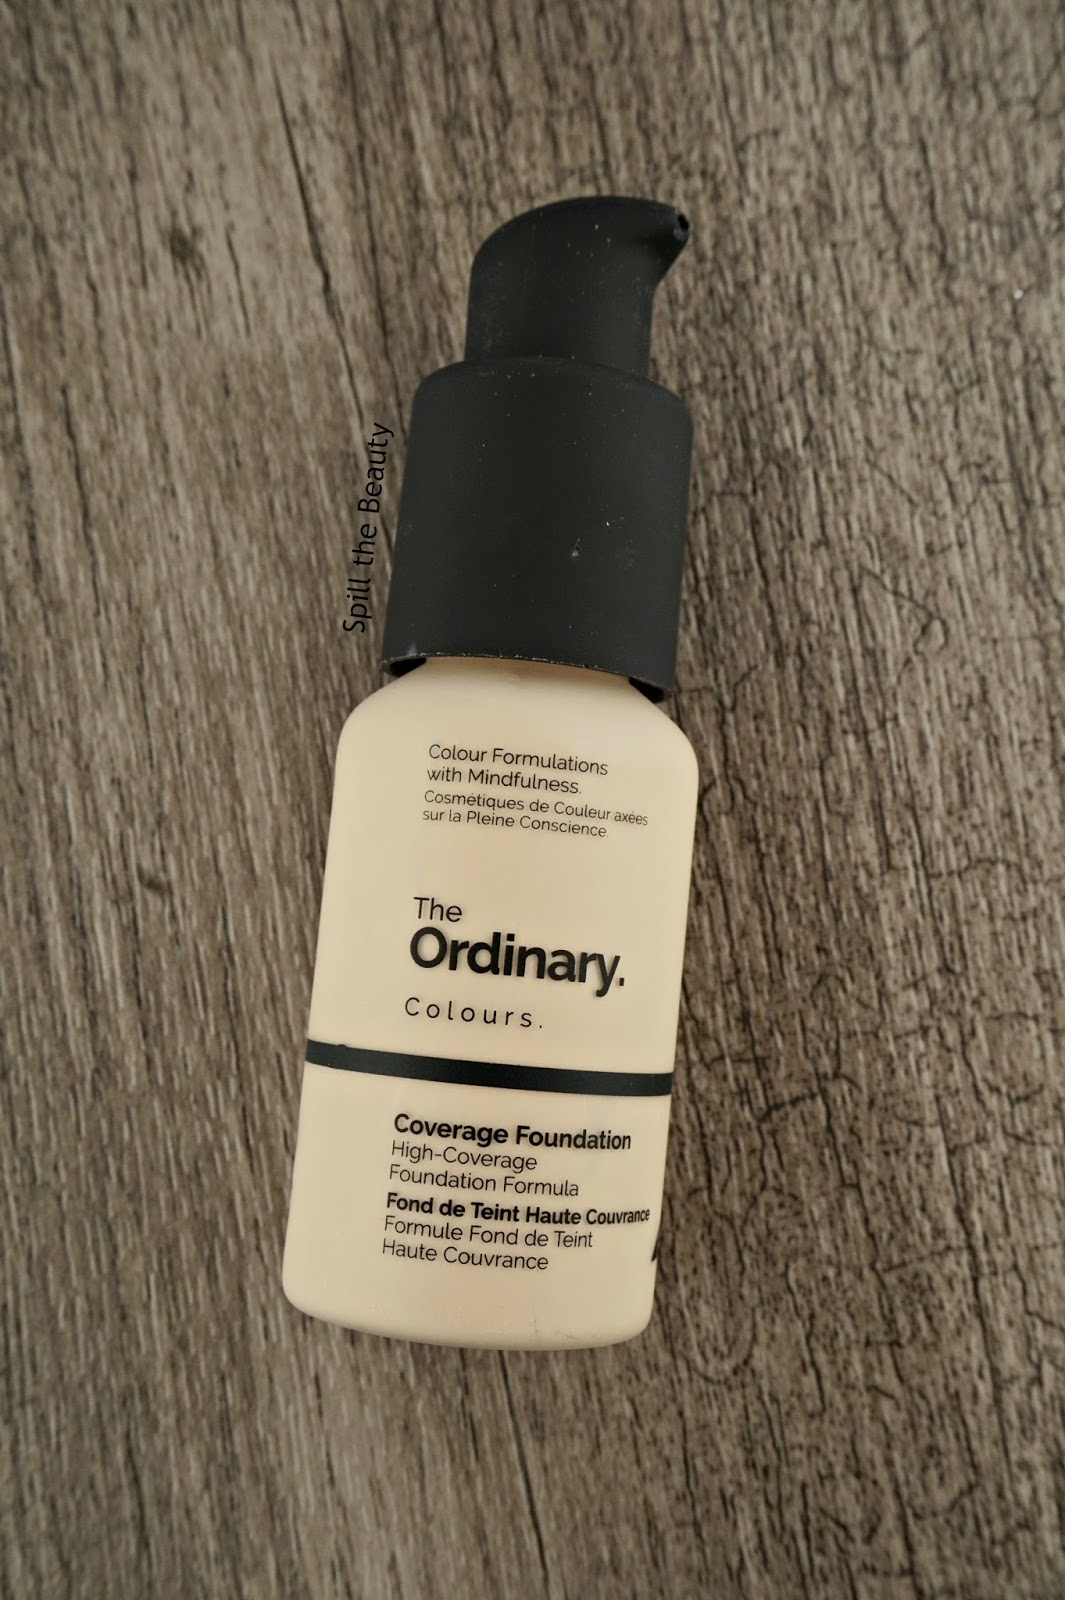 deciem the ordinary deciem high coverage foundation 1.0 s very fair review swatches comparison urban decay